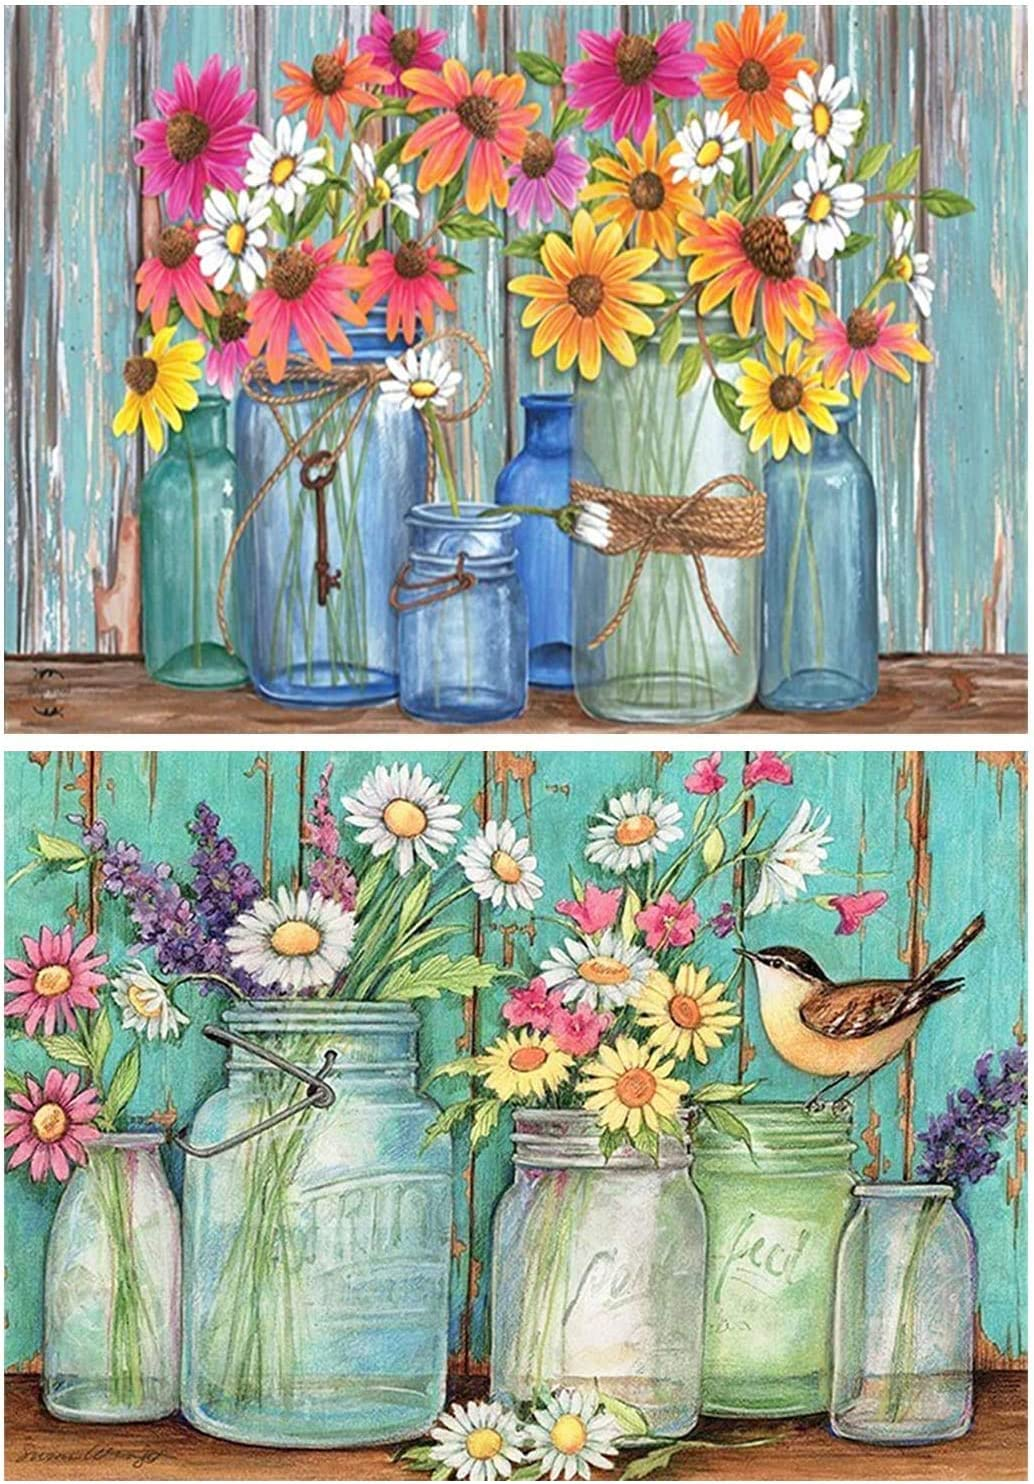 12/×16 inches 2 Pack DIY 5D Diamond Painting Kits for Adults Paint by Number Kits Full Drill Painting Diamond Pictures Arts Craft for Wall Decoration Colorful Daisy